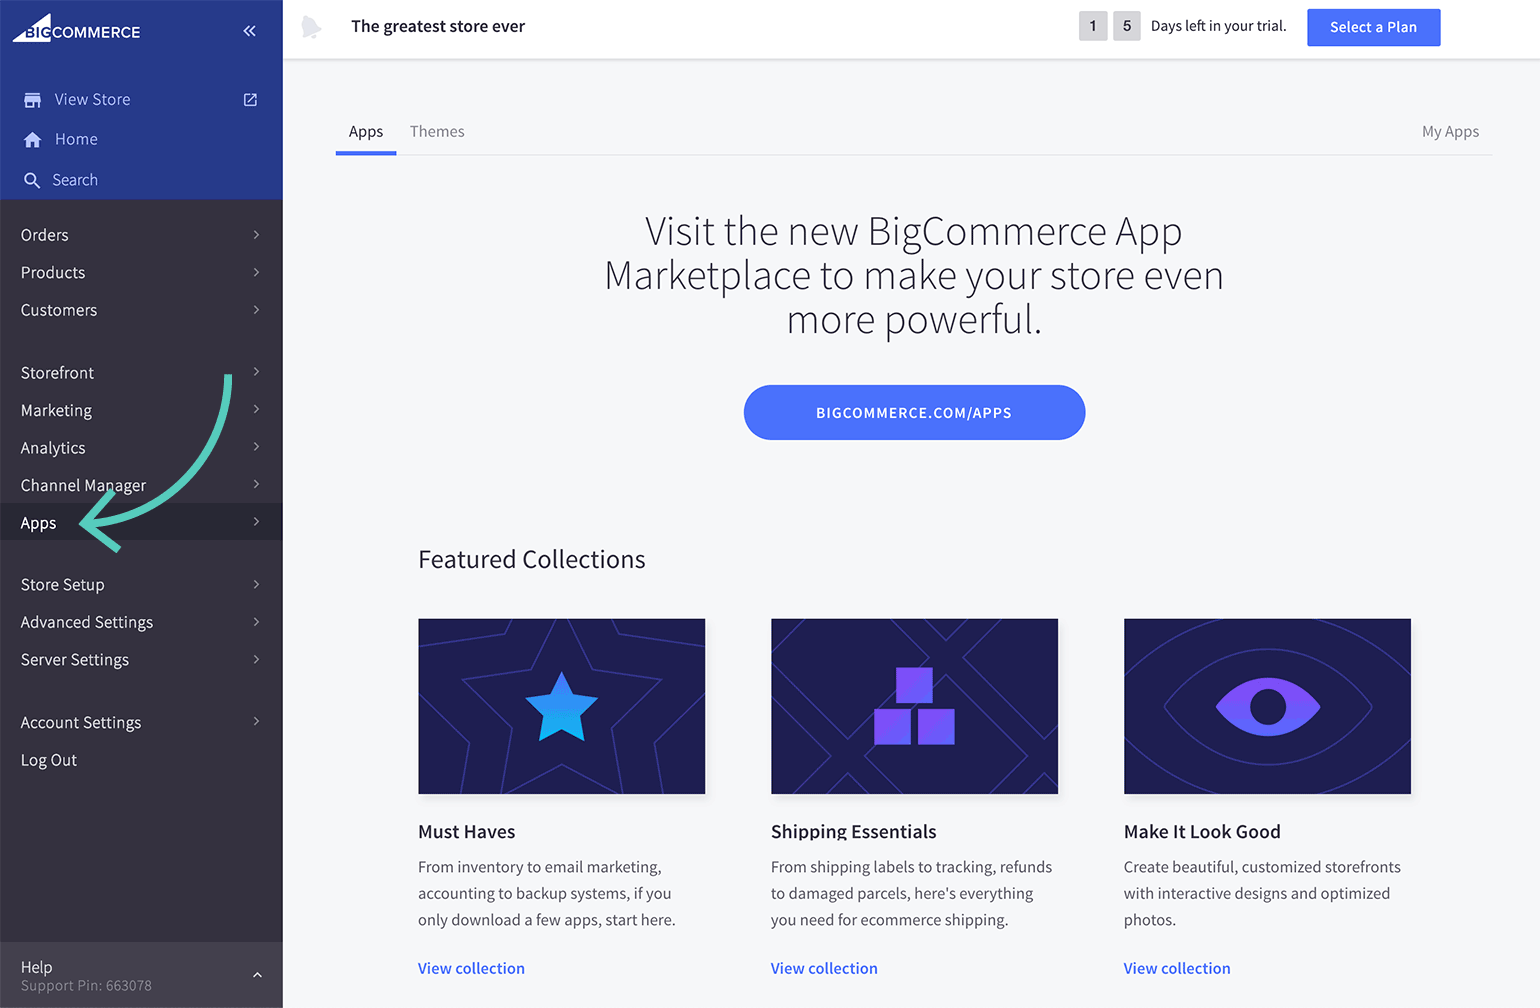 Add LiveChat to BigCommerce